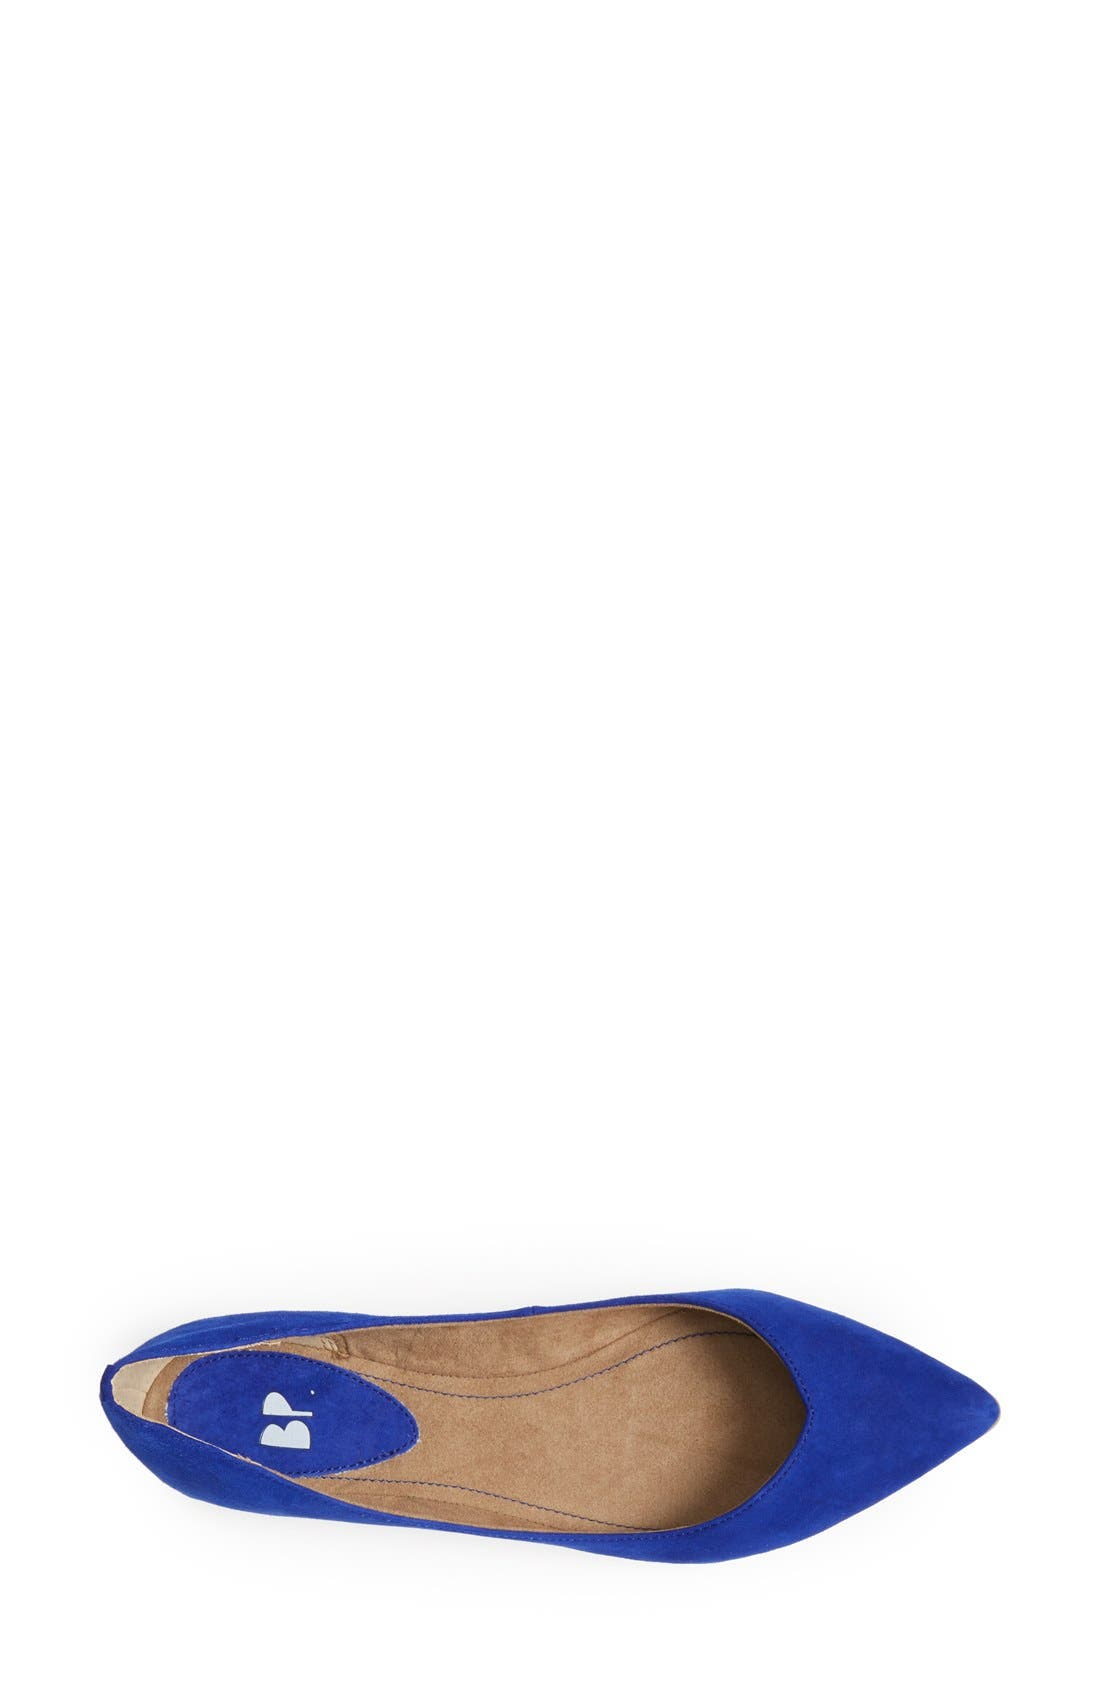 Alternate Image 3  - BP. 'Moveover' Pointy Toe Leather Flat (Women)